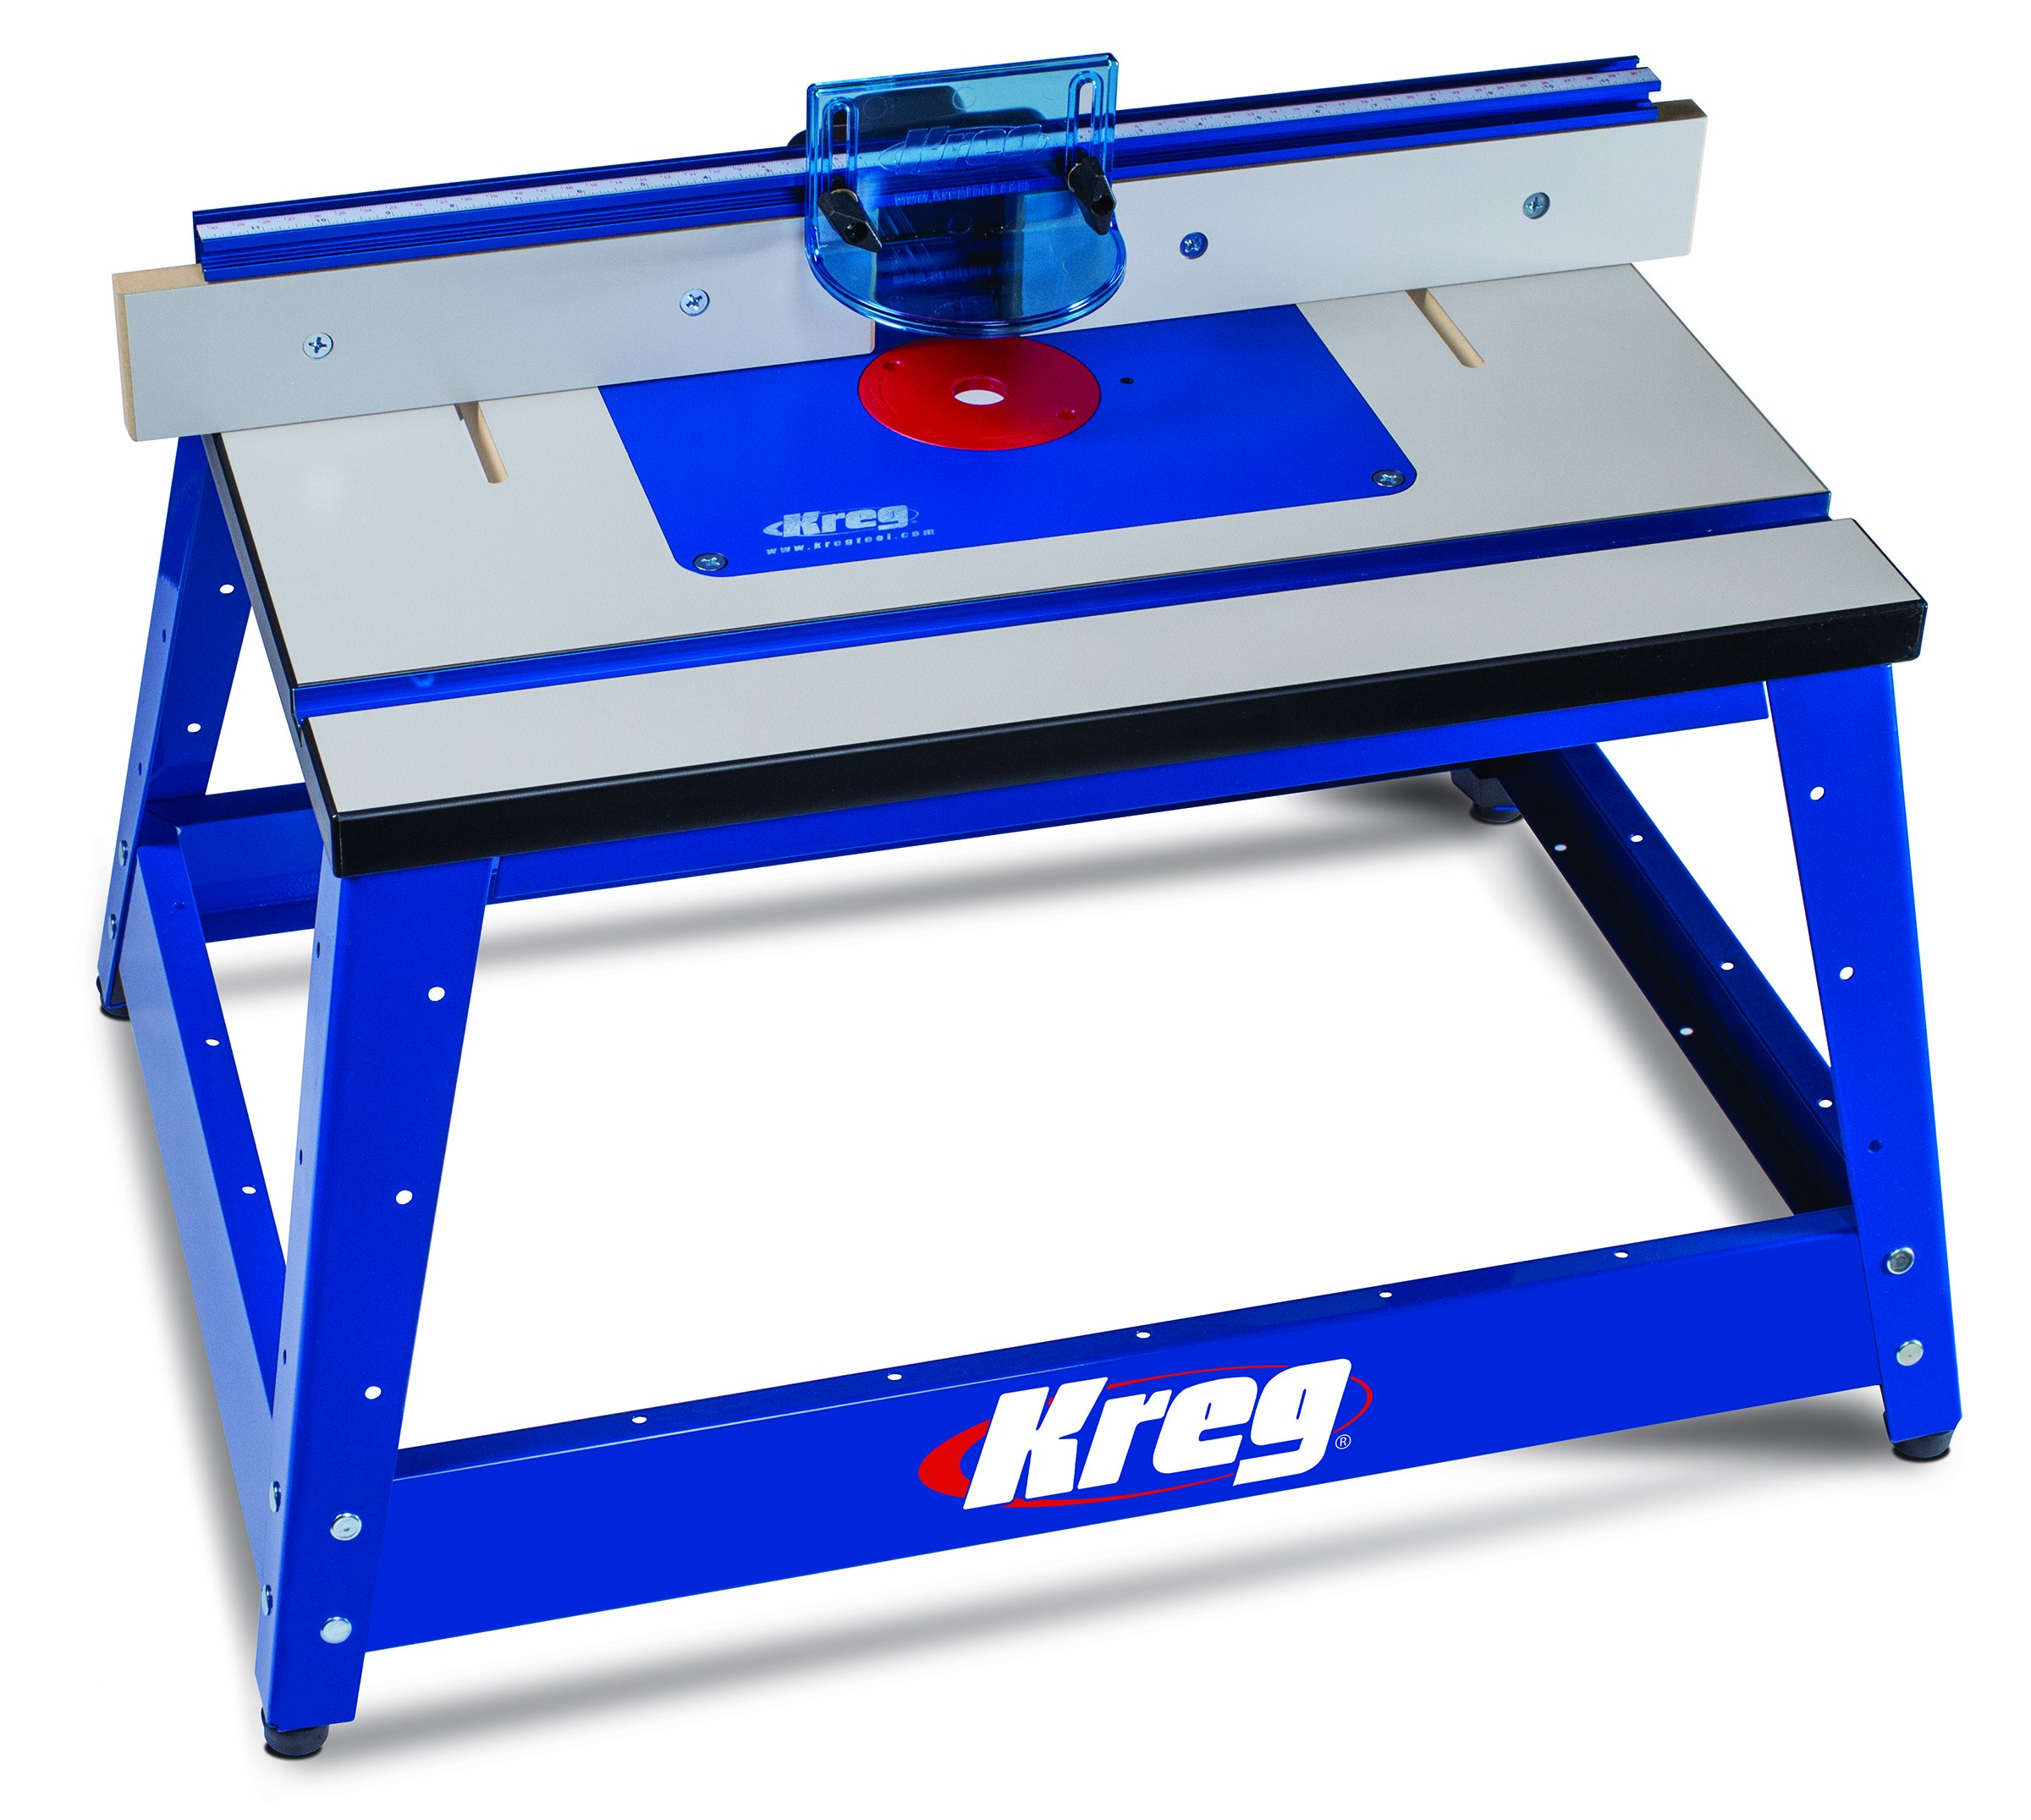 Kreg PRS2100 Bench Top Router Table by Kreg